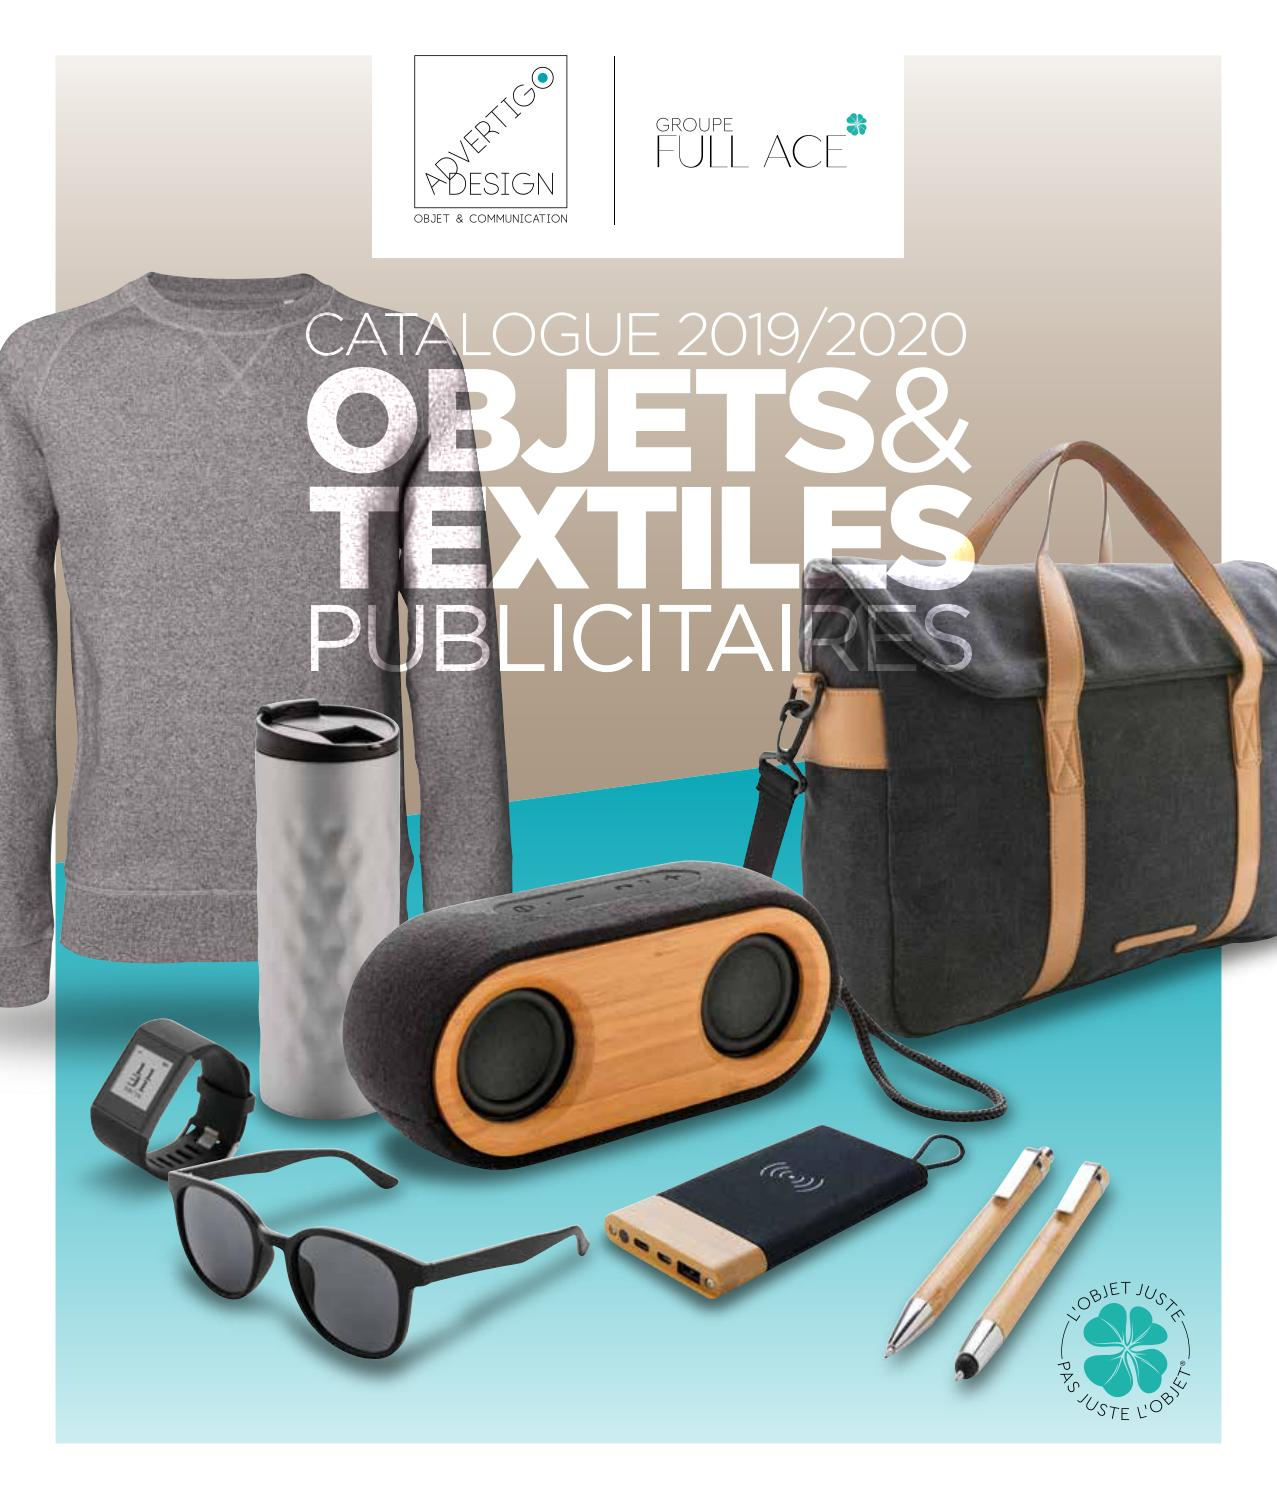 Advertigo Og10 Goodies Issuu By Objectif 5LRj4A